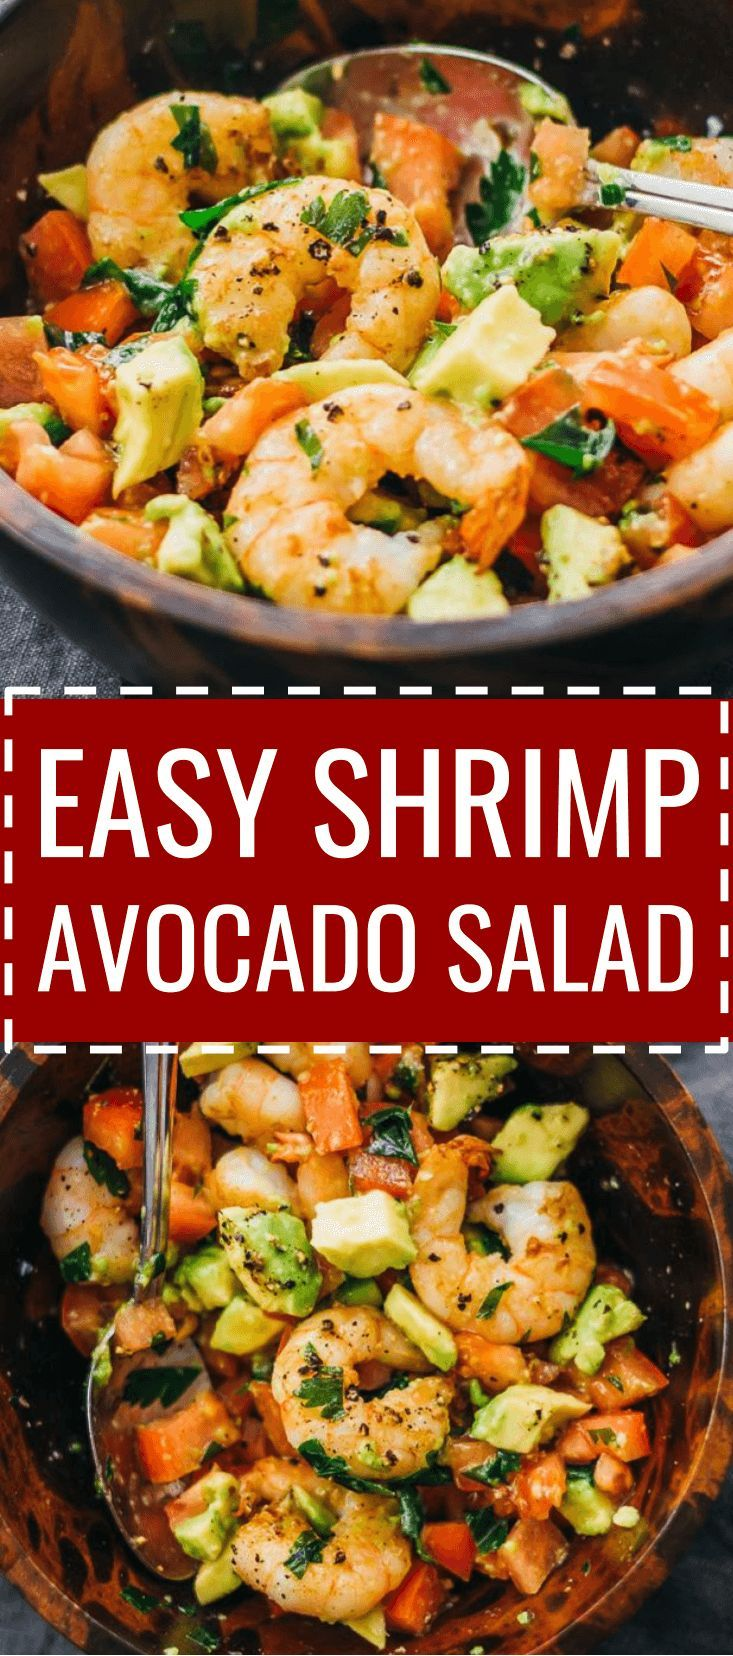 Here's a delicious and healthy cold shrimp salad with avocado, tomatoes, feta cheese, and lemon juice. dressing / summer / appetizer / fried / southwest / weight watchers / simple / whole 30 / cooked / citrus / fresh / meal prep / best / dip / ideas / skinny / chopped /  keto / low carb / diet / atkins / induction / meals / recipes / easy / dinner / lunch / foods / healthy #shrimp #salad via @savory_tooth